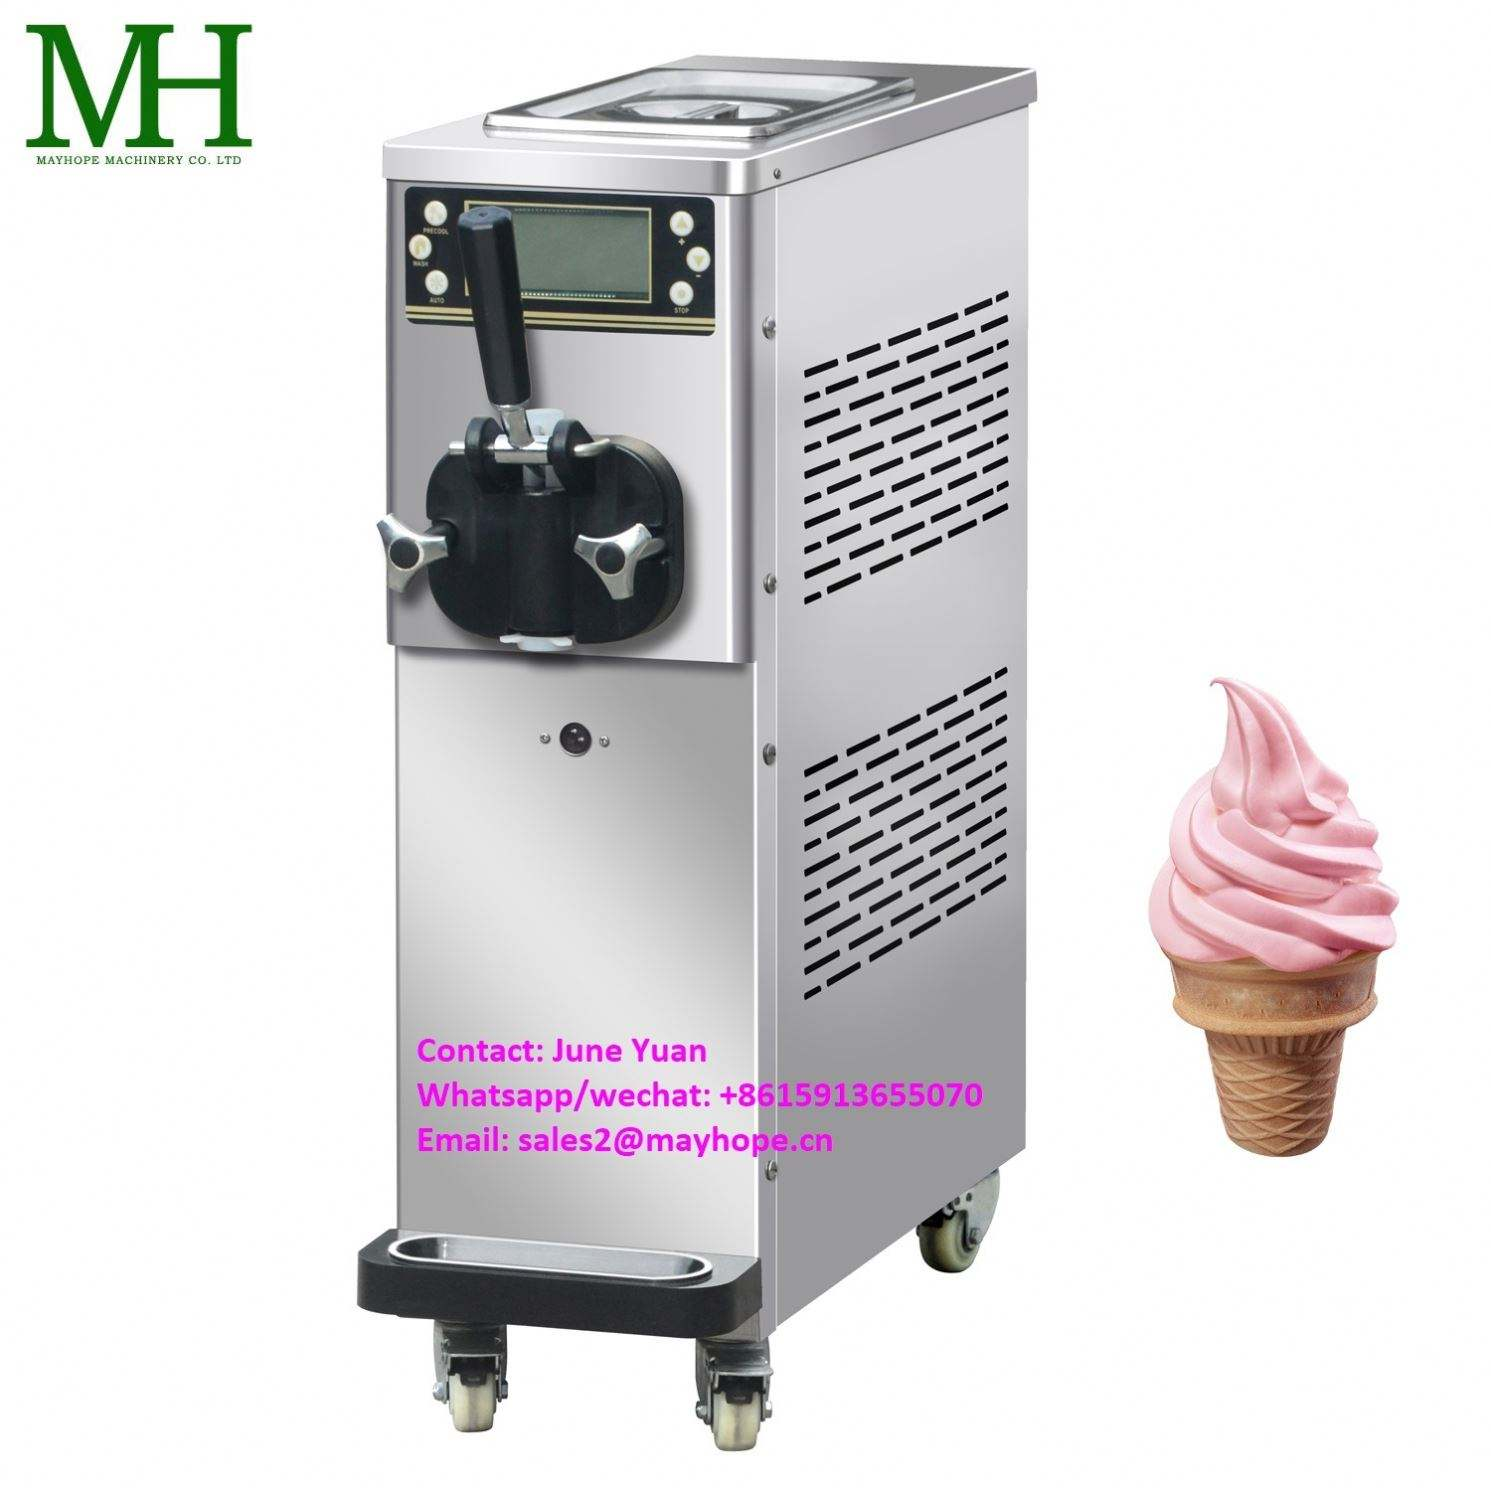 Industrial Automatic Desktop Frozen Yogurt Ice Cream Maker Machine for Sale